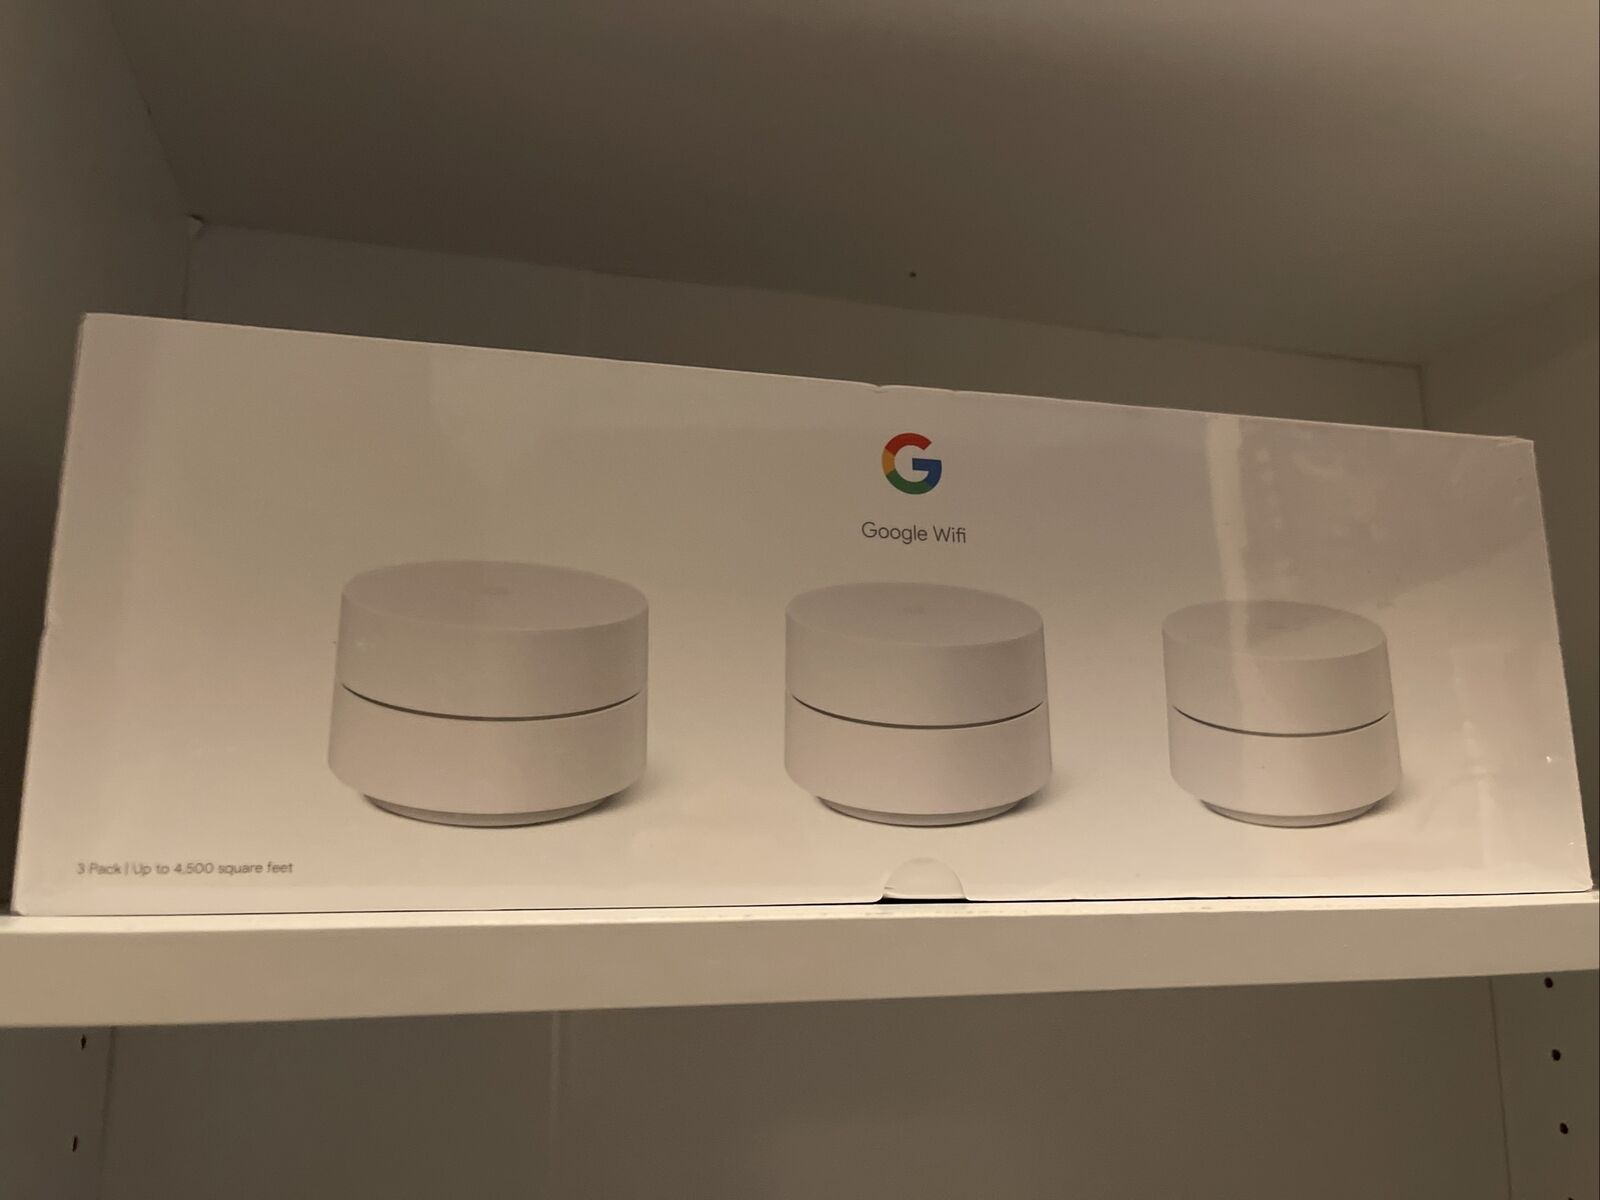 Google Wifi - Whole Home Dual-Band Mesh Wi-Fi System - 3 Pack. Buy it now for 139.00